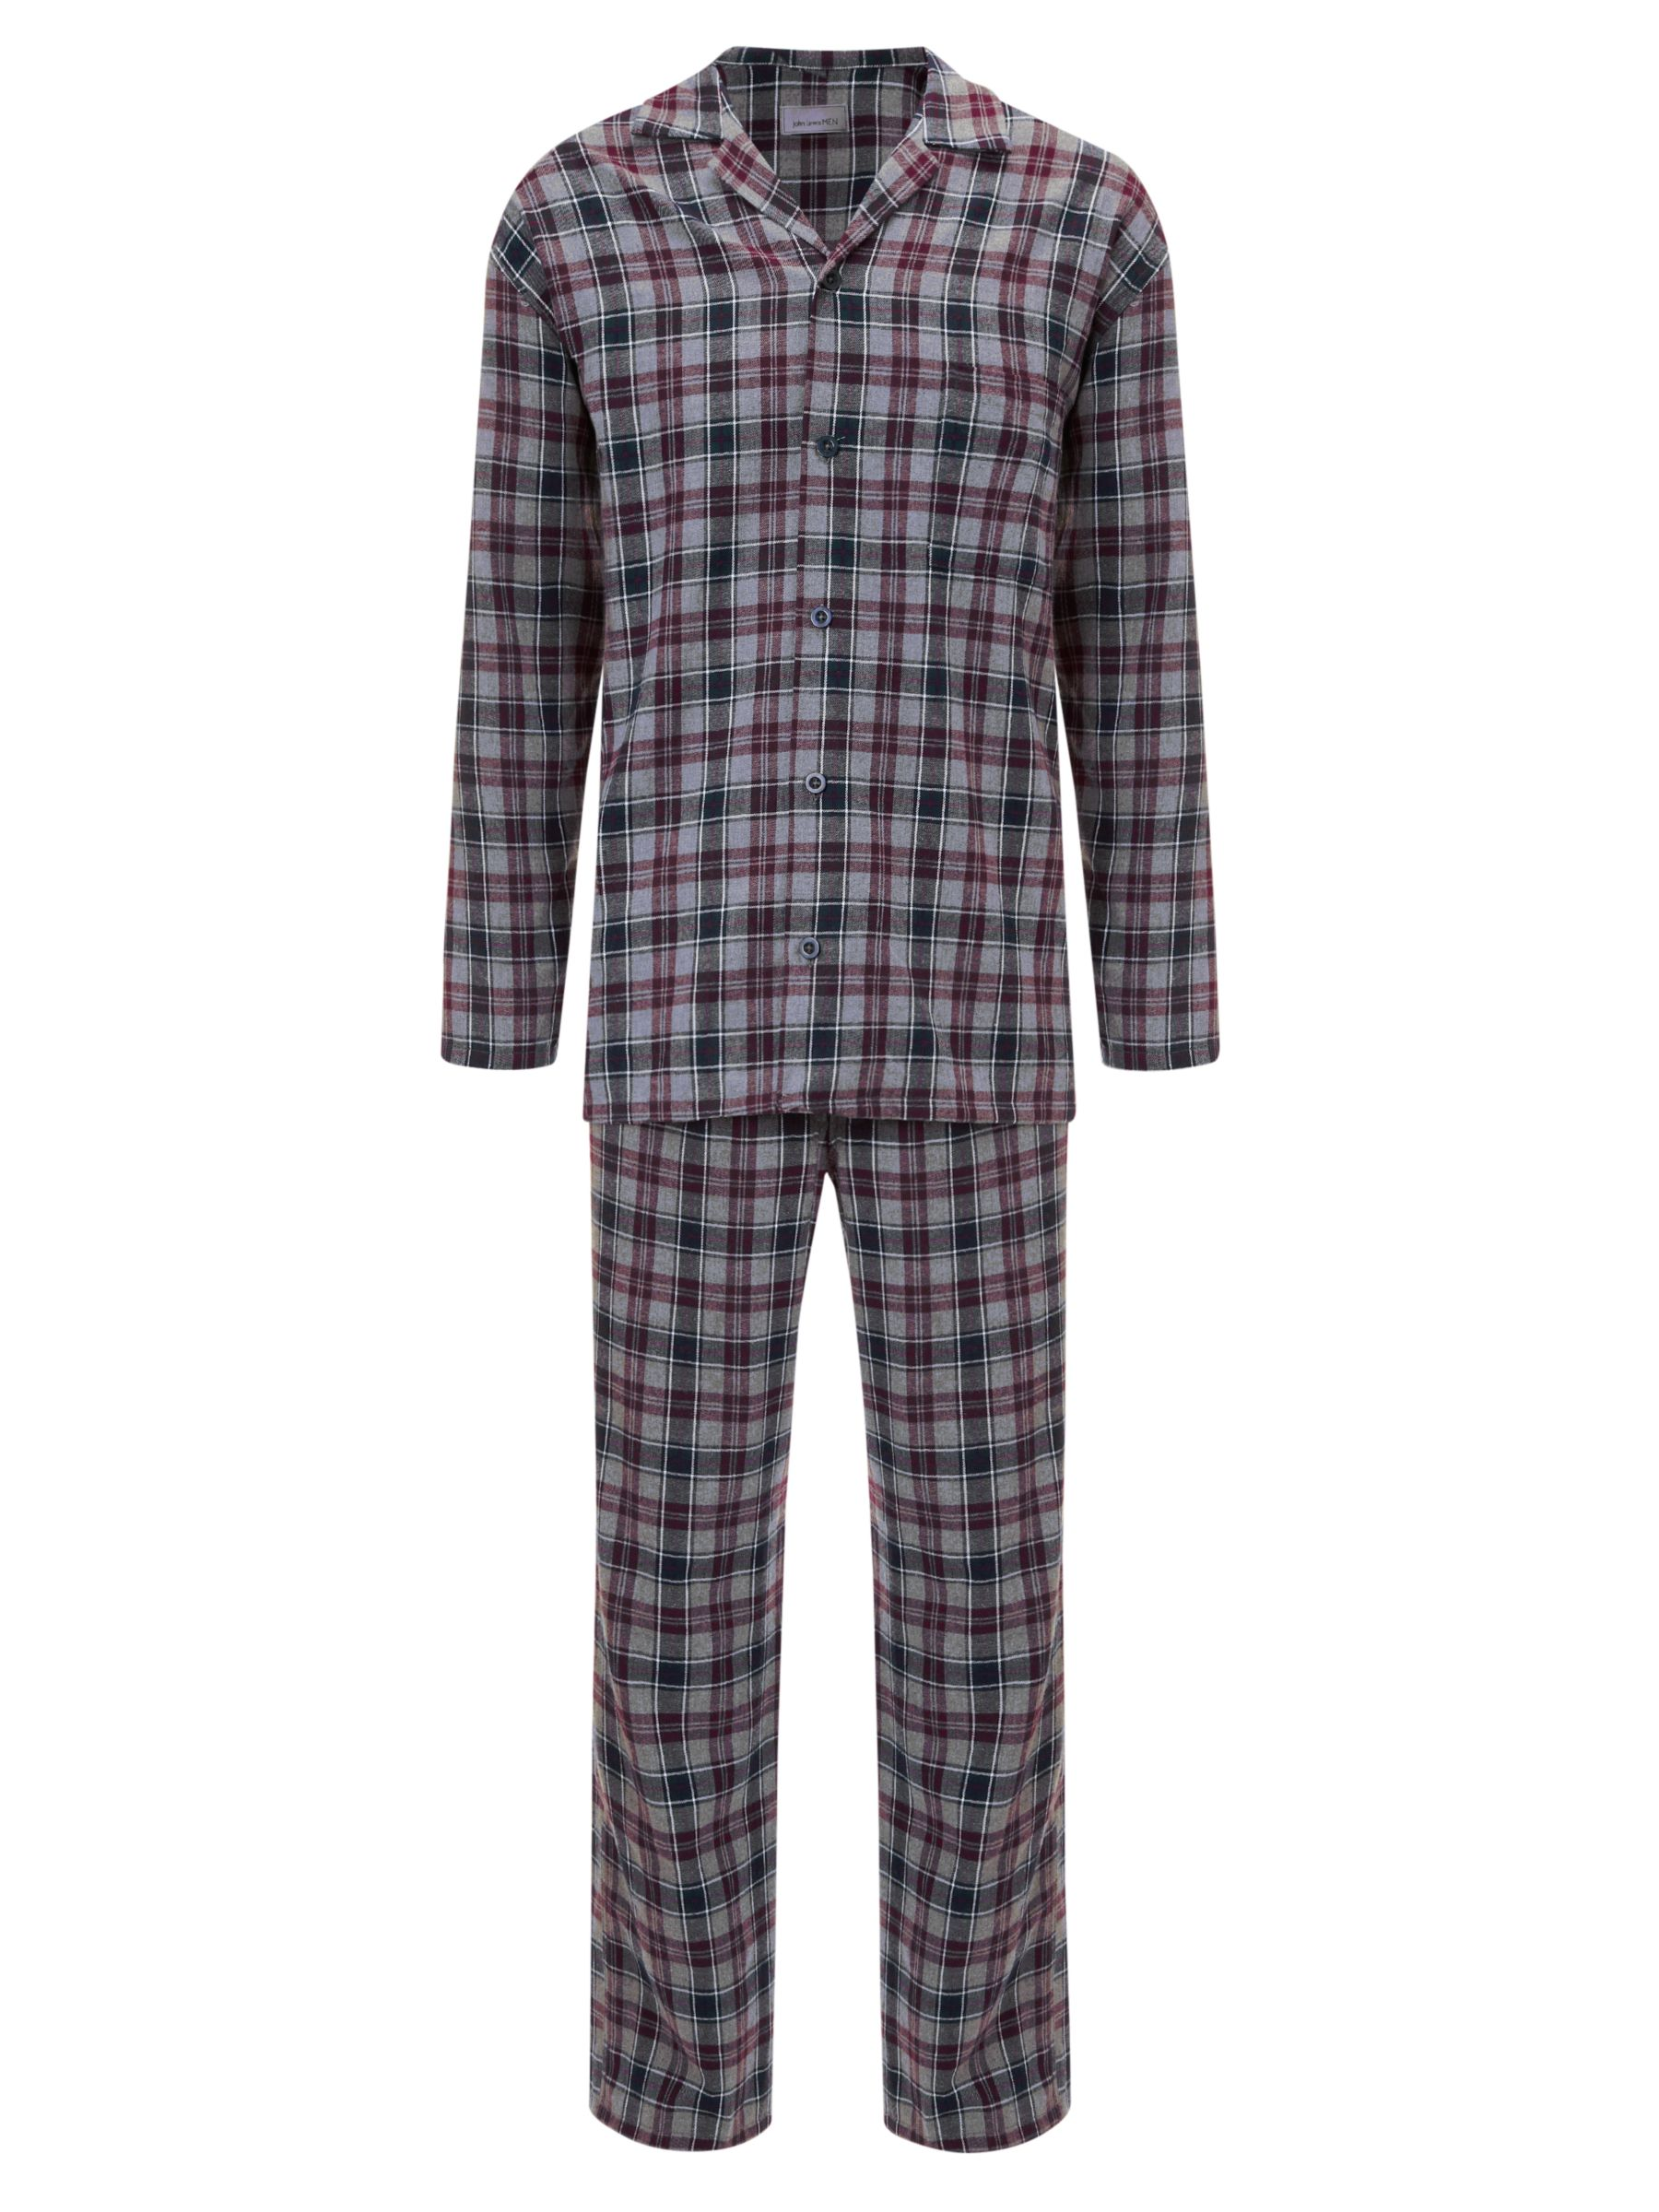 John Lewis Brushed Cotton Check Pyjamas